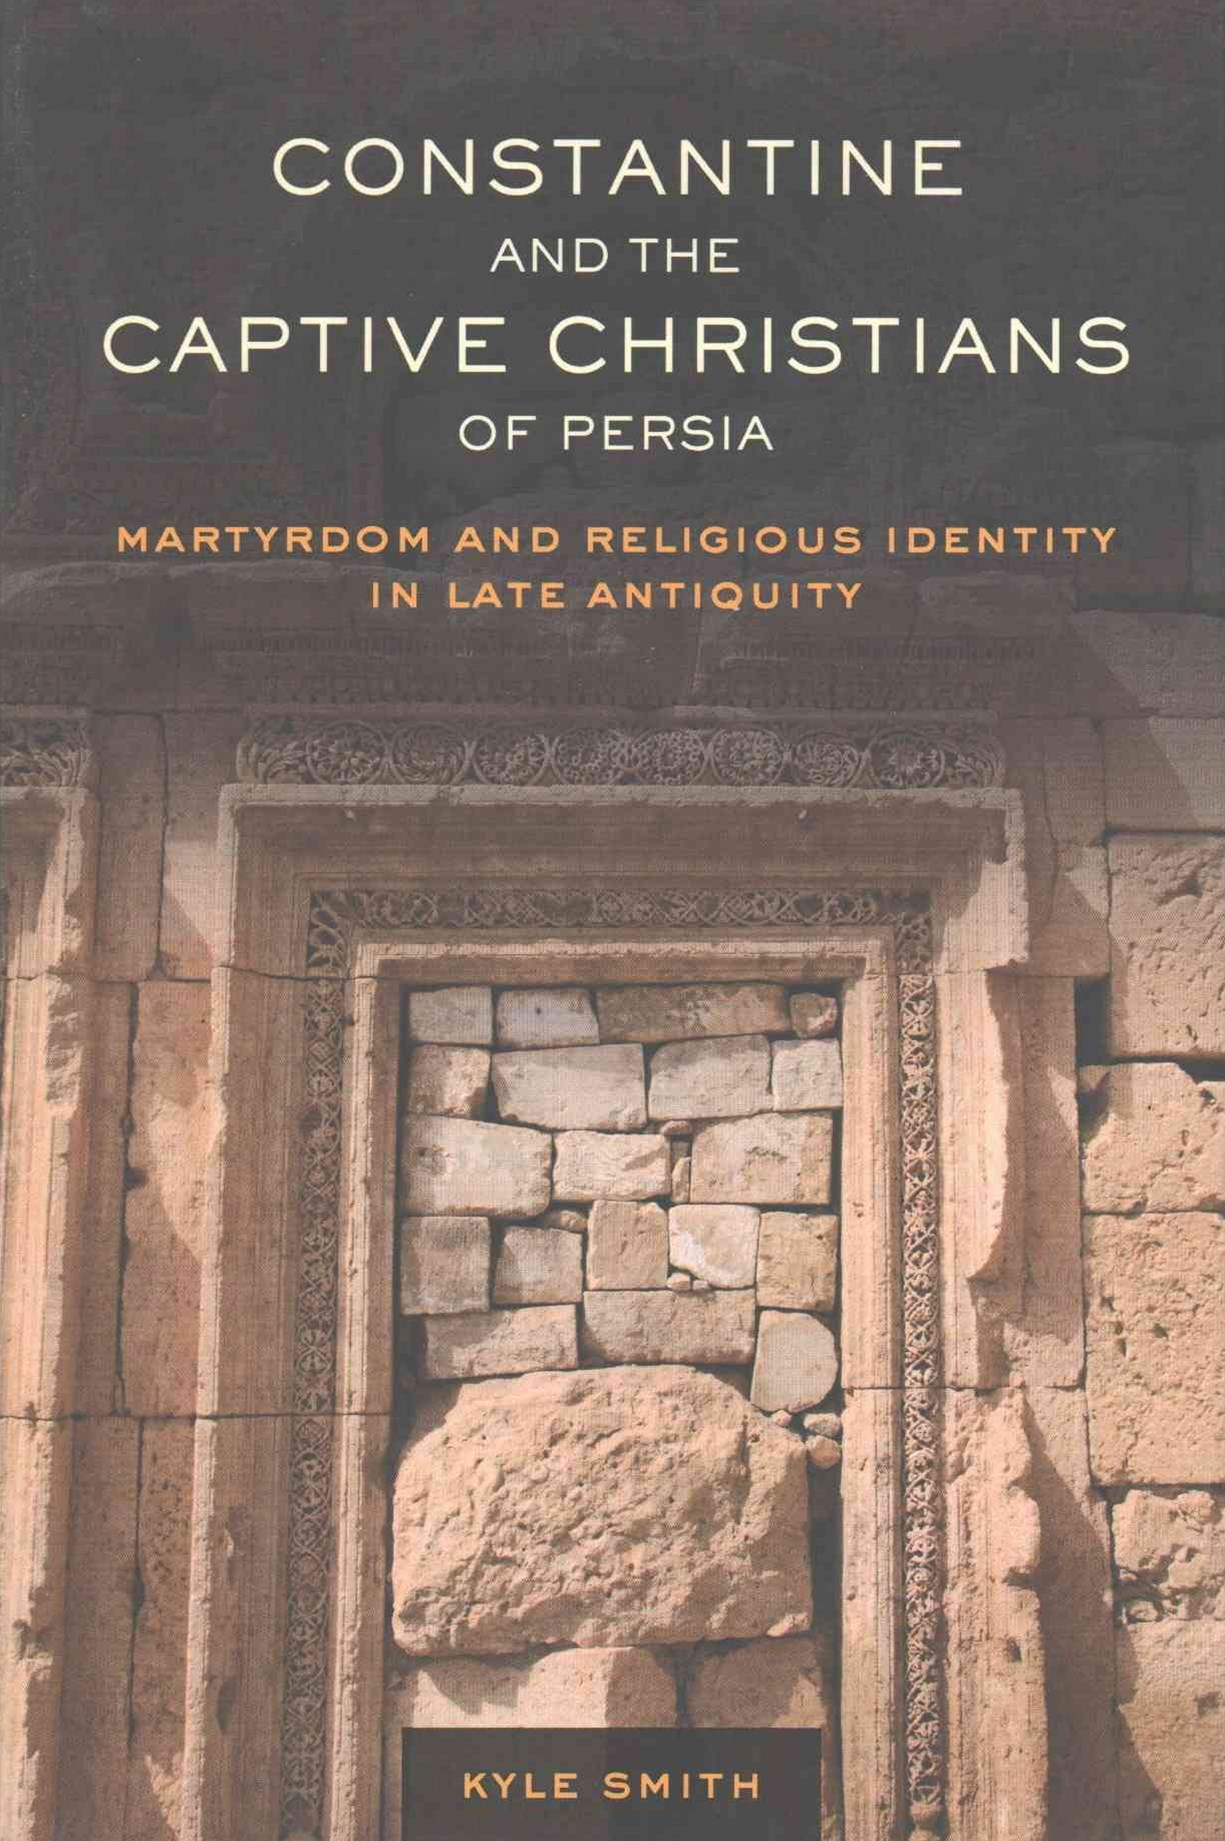 Constantine and the Captive Christians of Persia